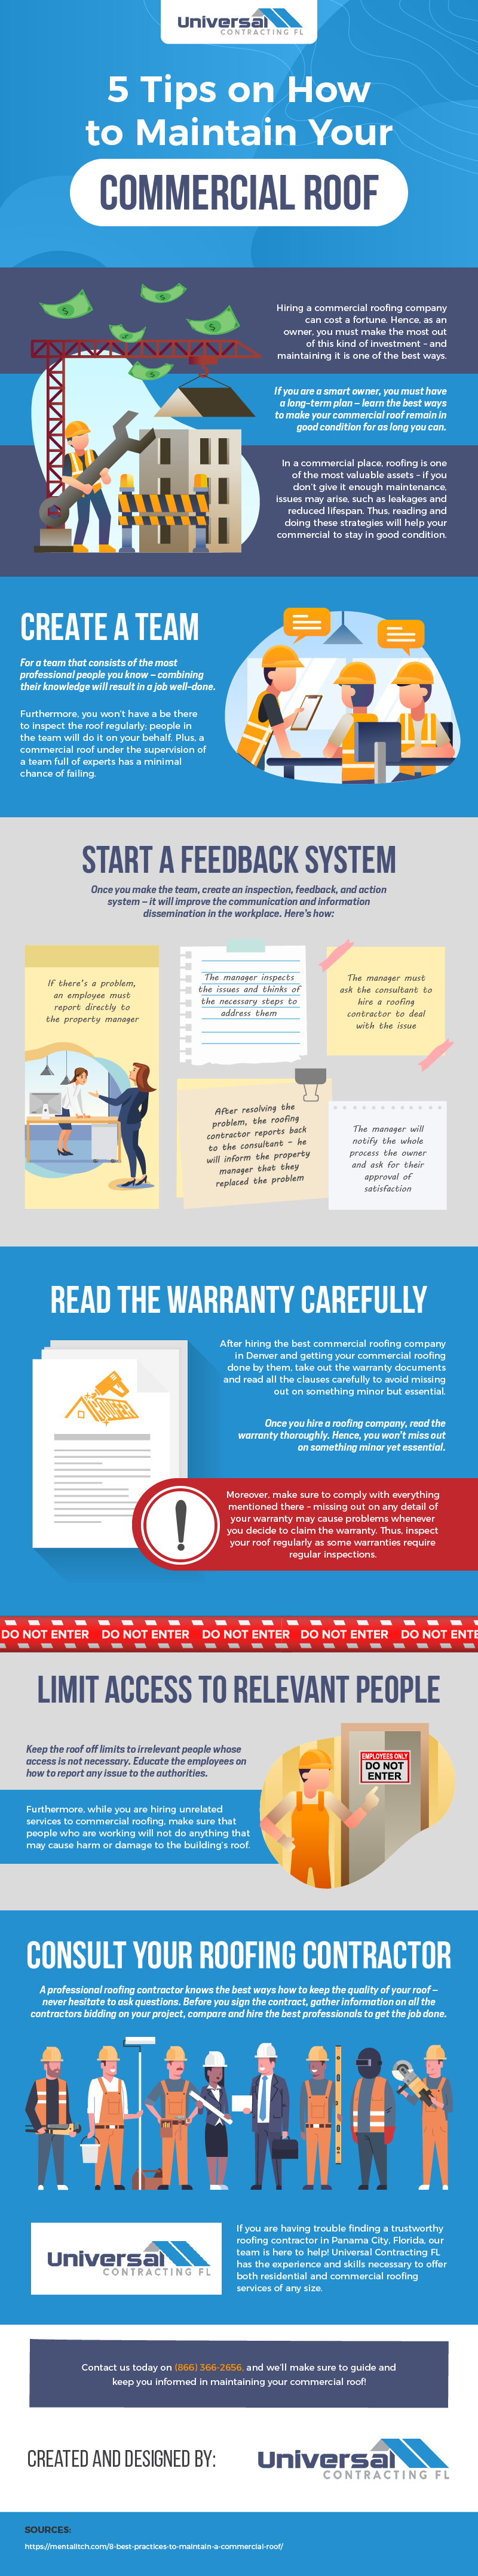 5 Tips on How to Maintain Your Commercial Roof - Infographic